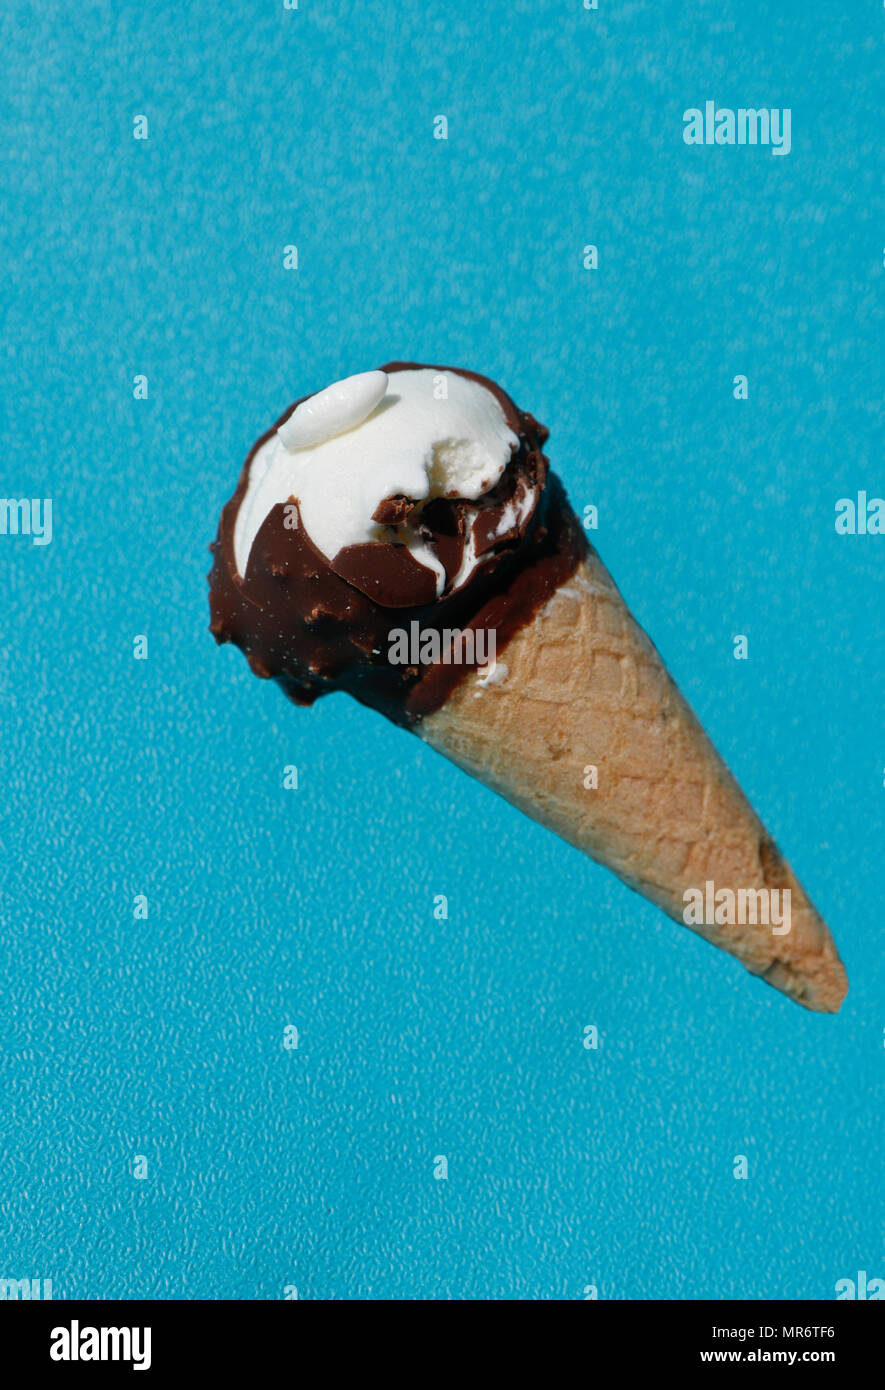 Ice cream cone on colorful background - Stock Image